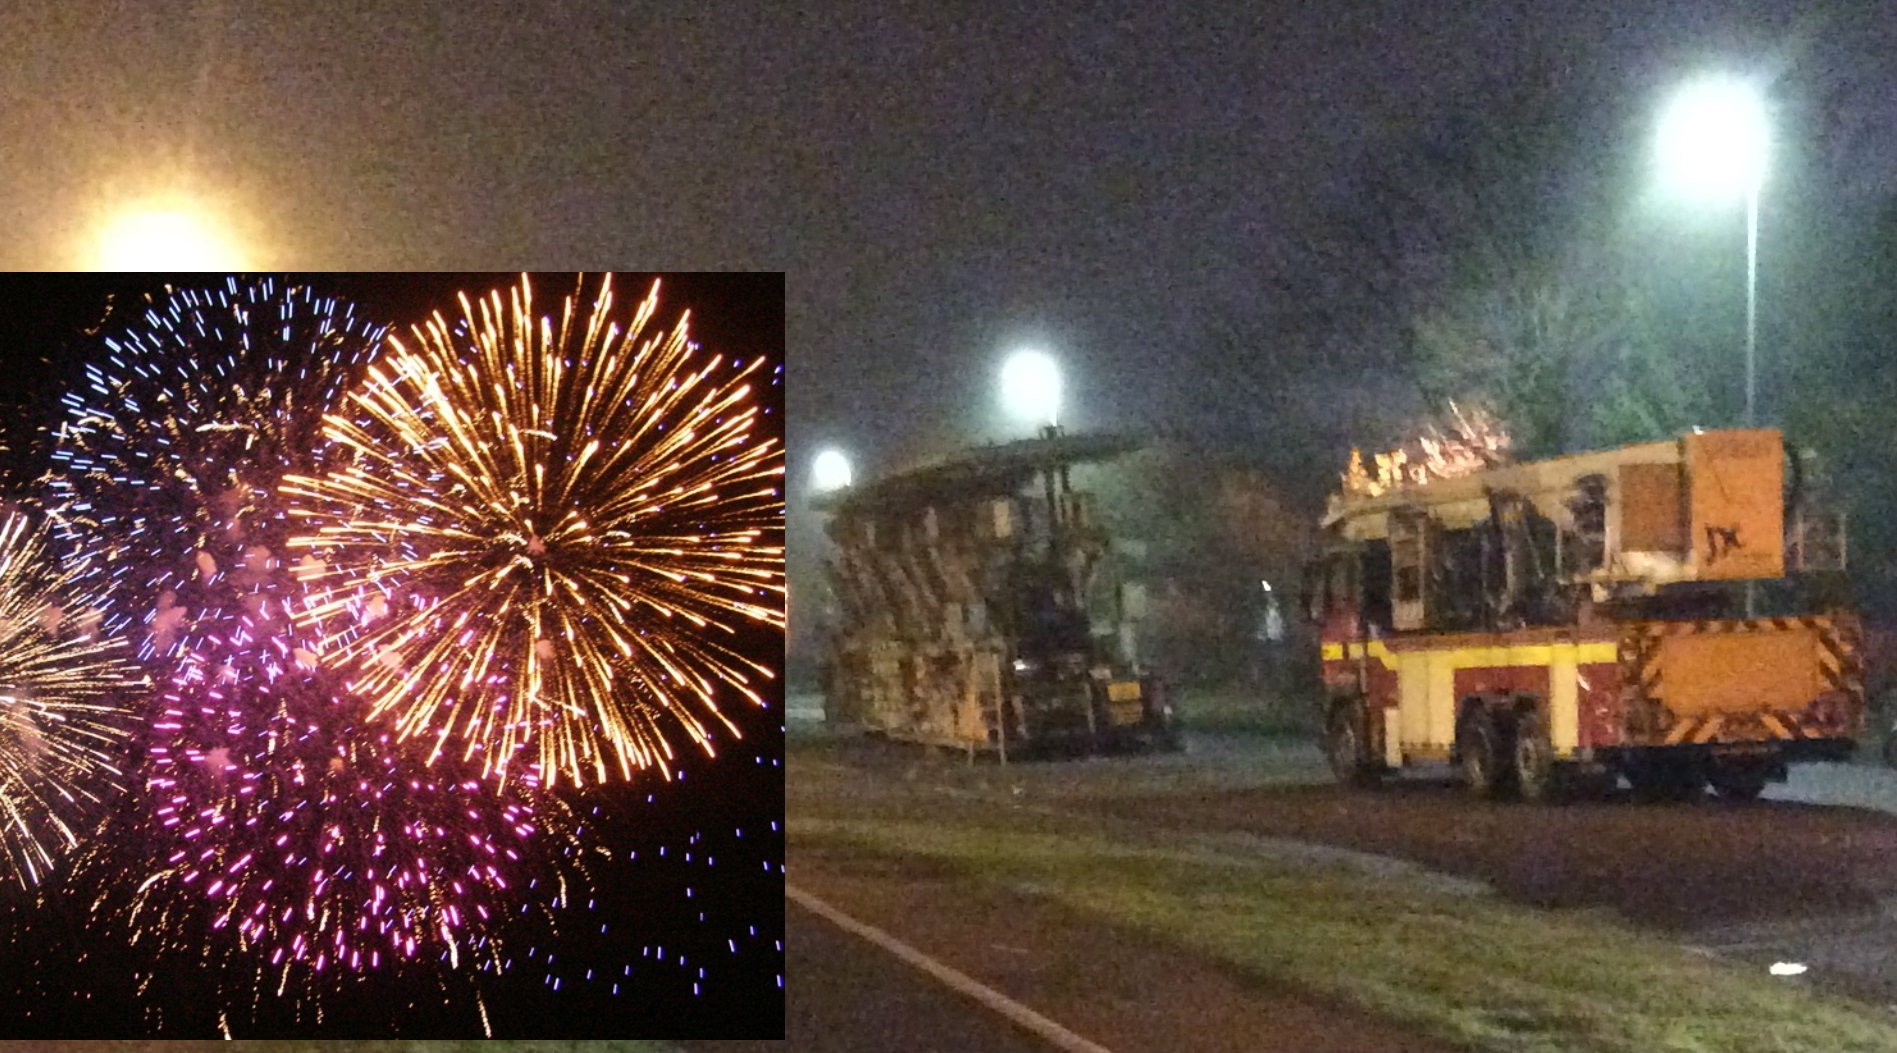 Ilminster fireworks pledge collection bucket money to family of woman injured in Chard Carnival crash